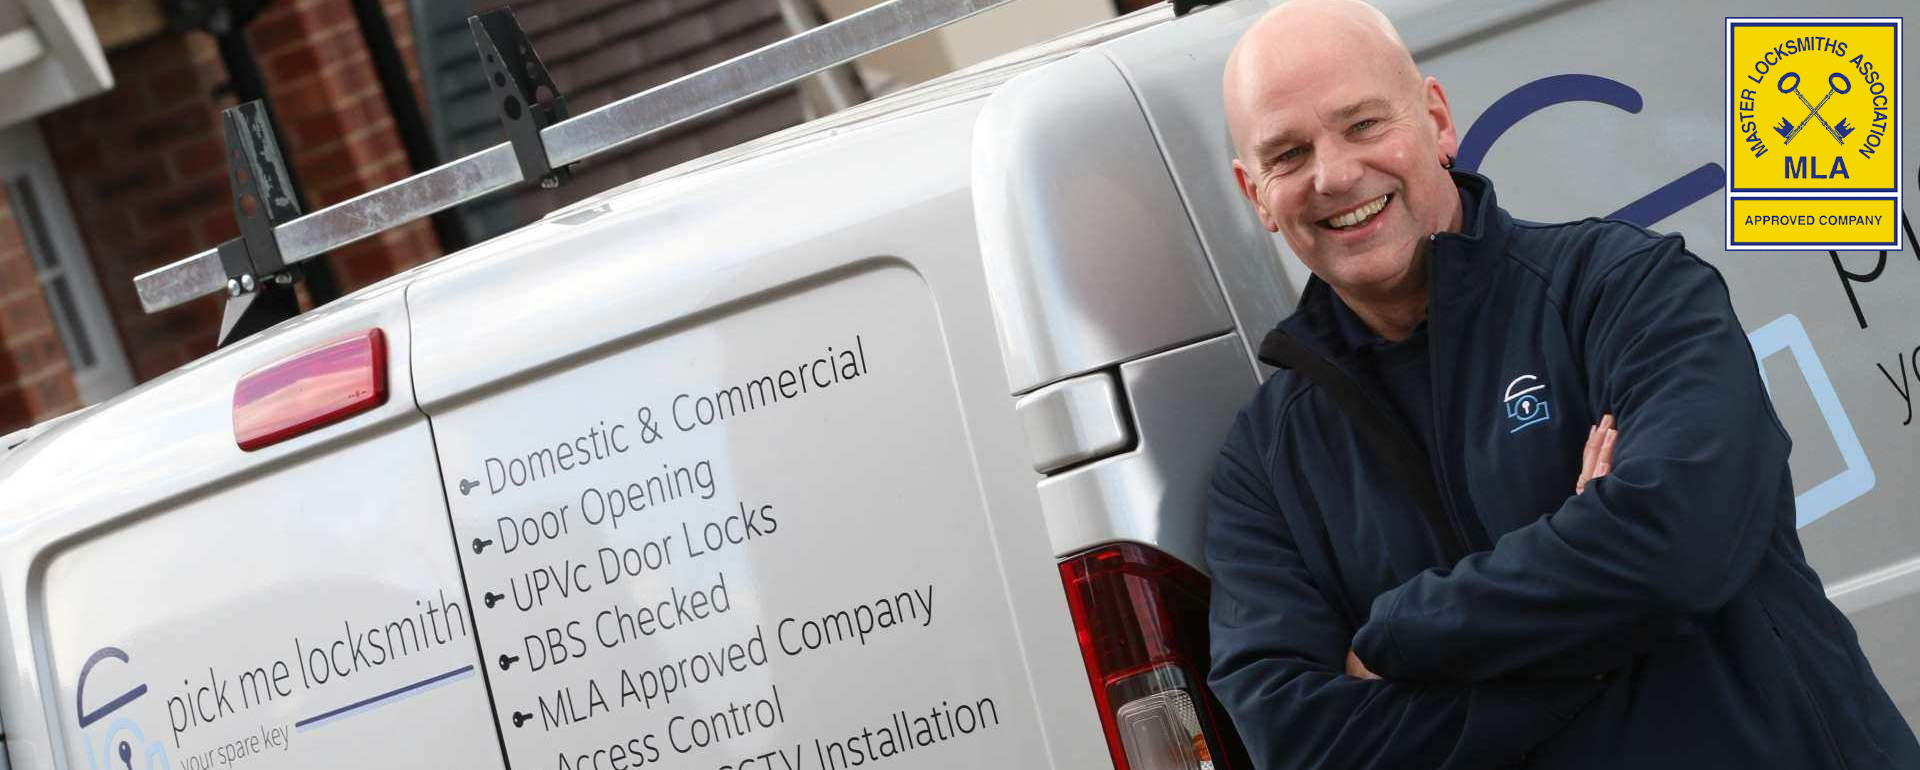 Locksmith Tamworth - Steve Brown Locksmith in Tamworth by his Locksmiths van